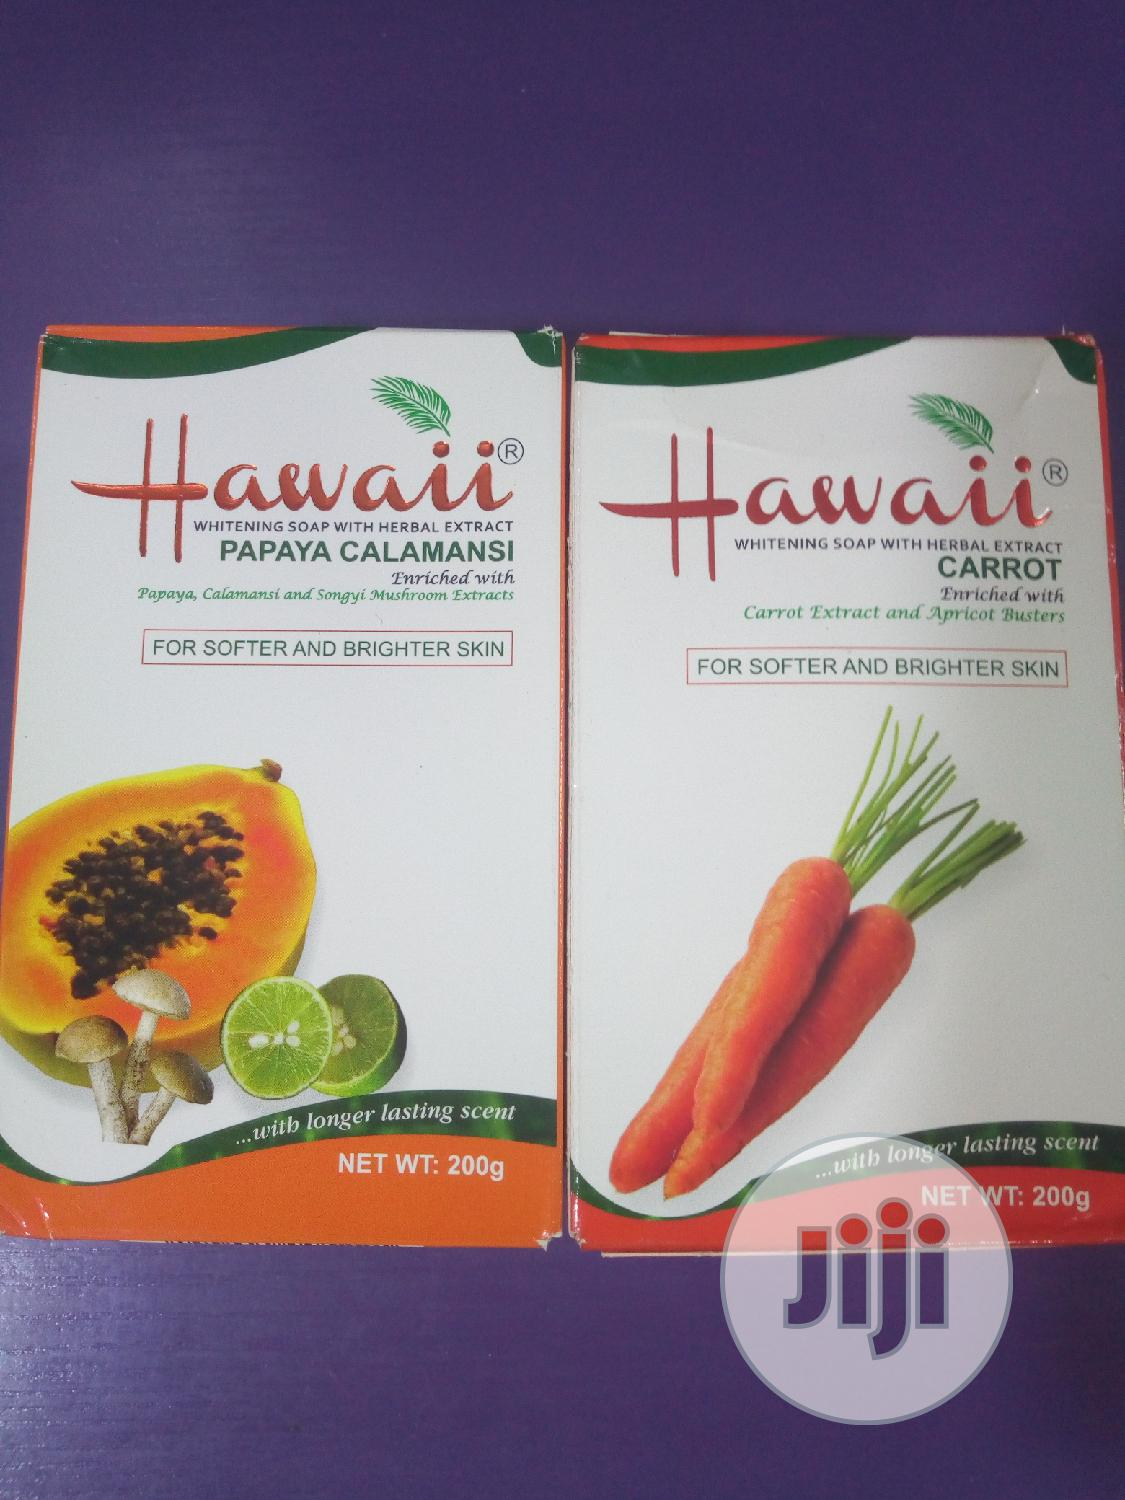 Archive: Hawaii Whitening Soap